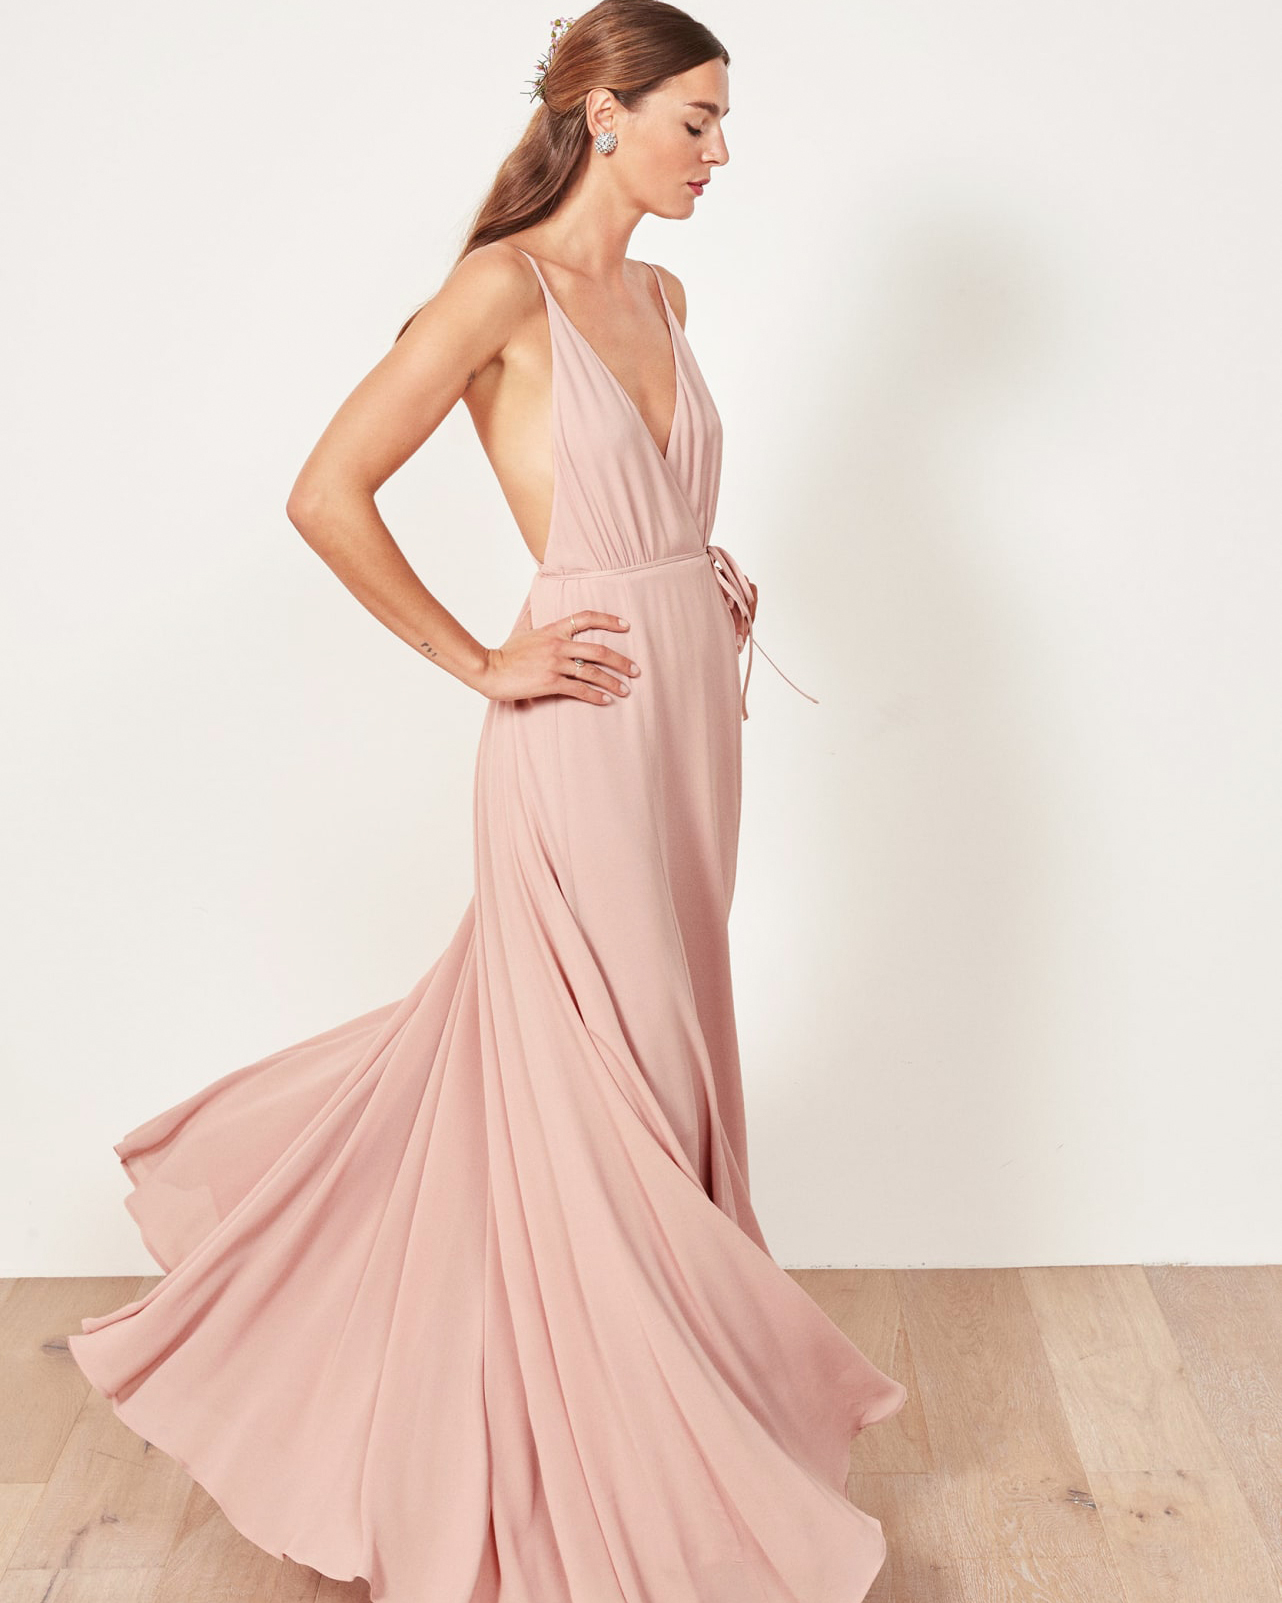 pink a-line spaghetti strap bridesmaid dress